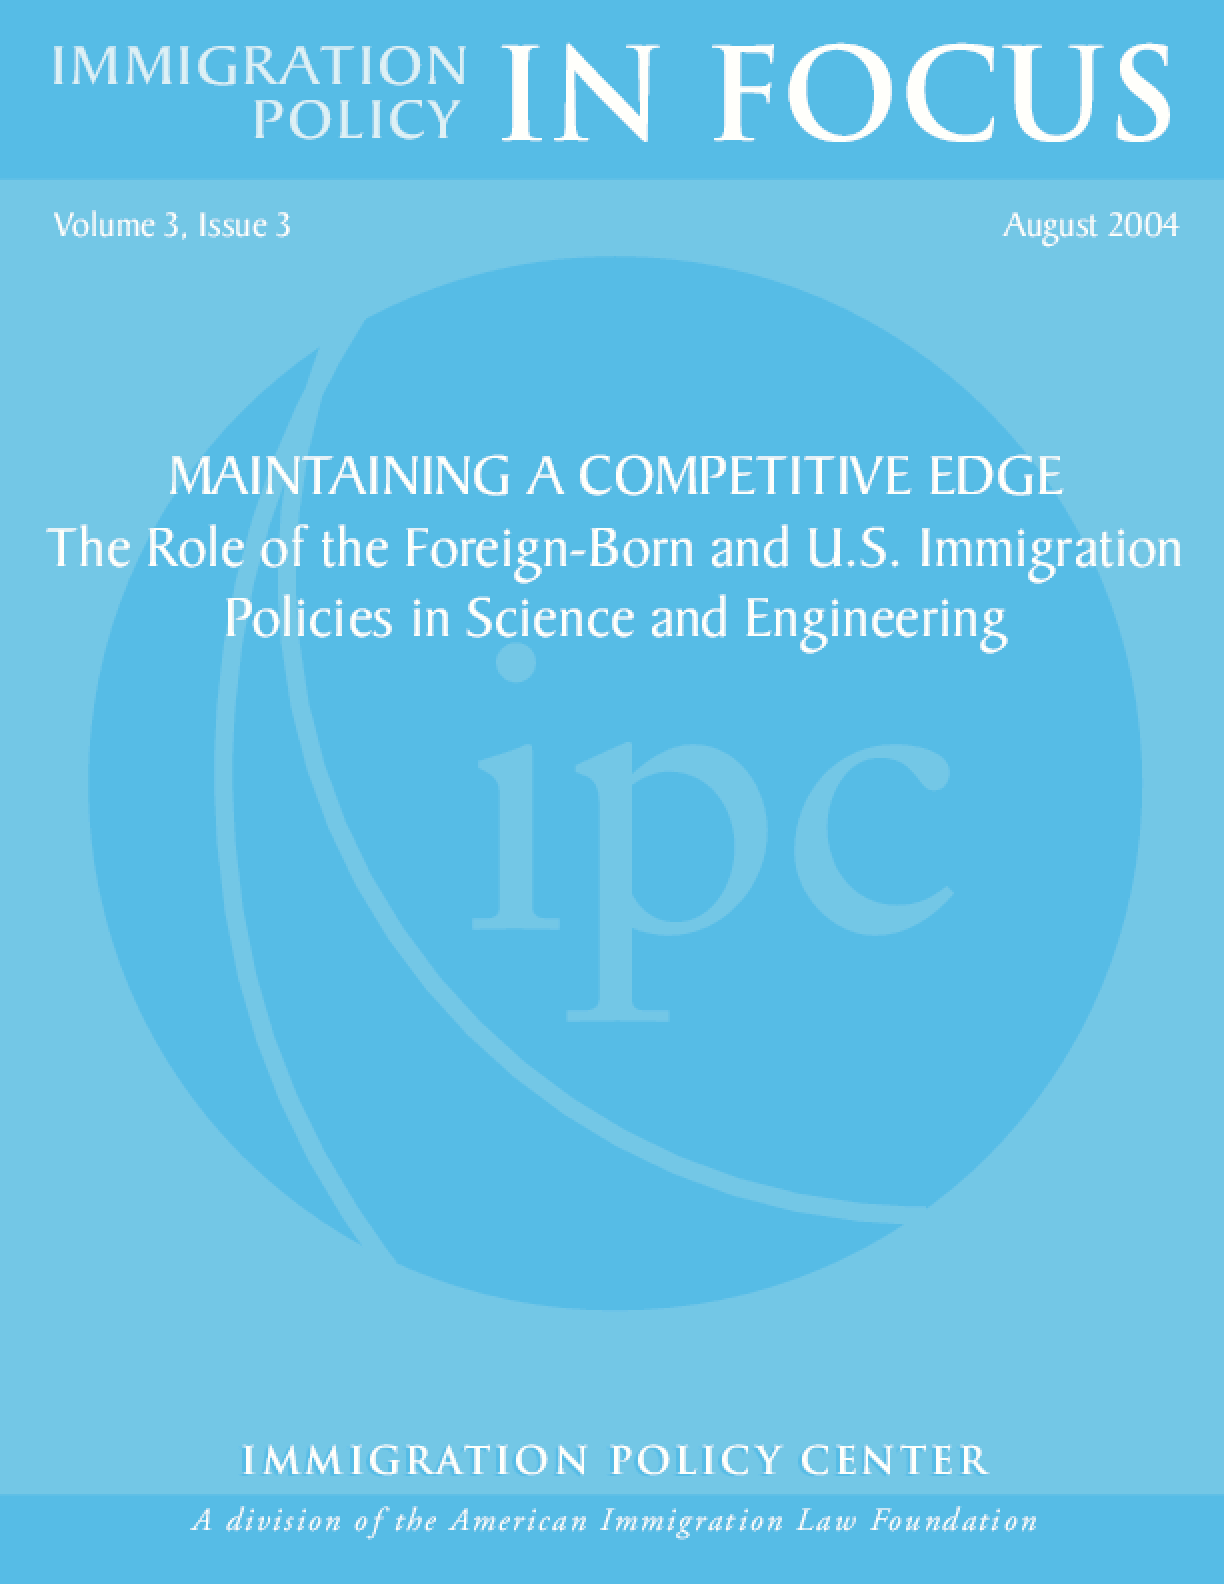 Maintaining A Competitive Edge: The Role of the Foreign-Born and U.S. Immigration Policies in Science and Engineering